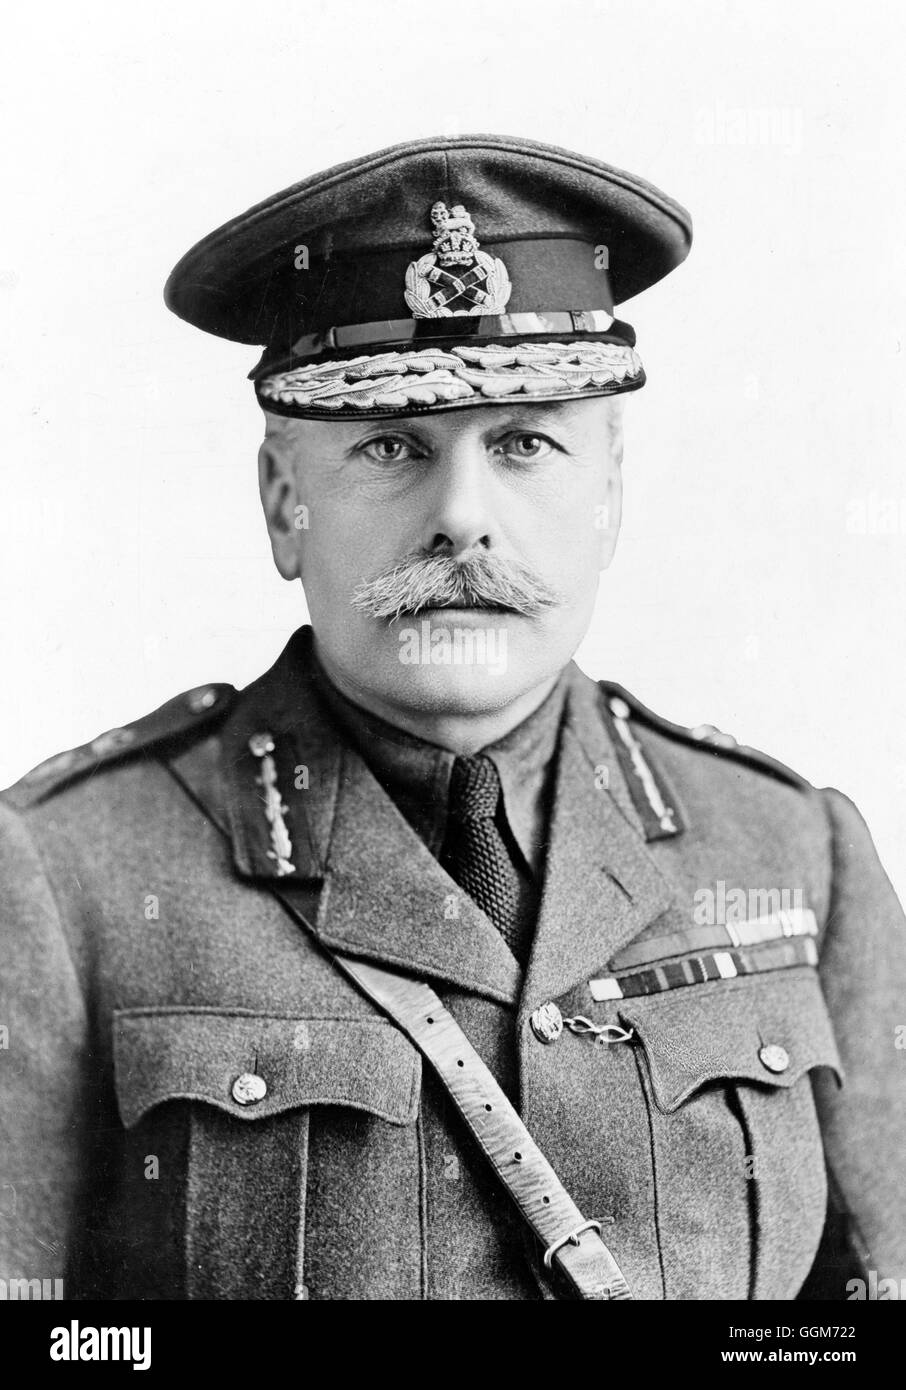 Sir Douglas Haig. Portrait of Field Marshal Douglas Haig, 1st Earl Haig,  (1861-1928). Photo c.1917. - Stock Image